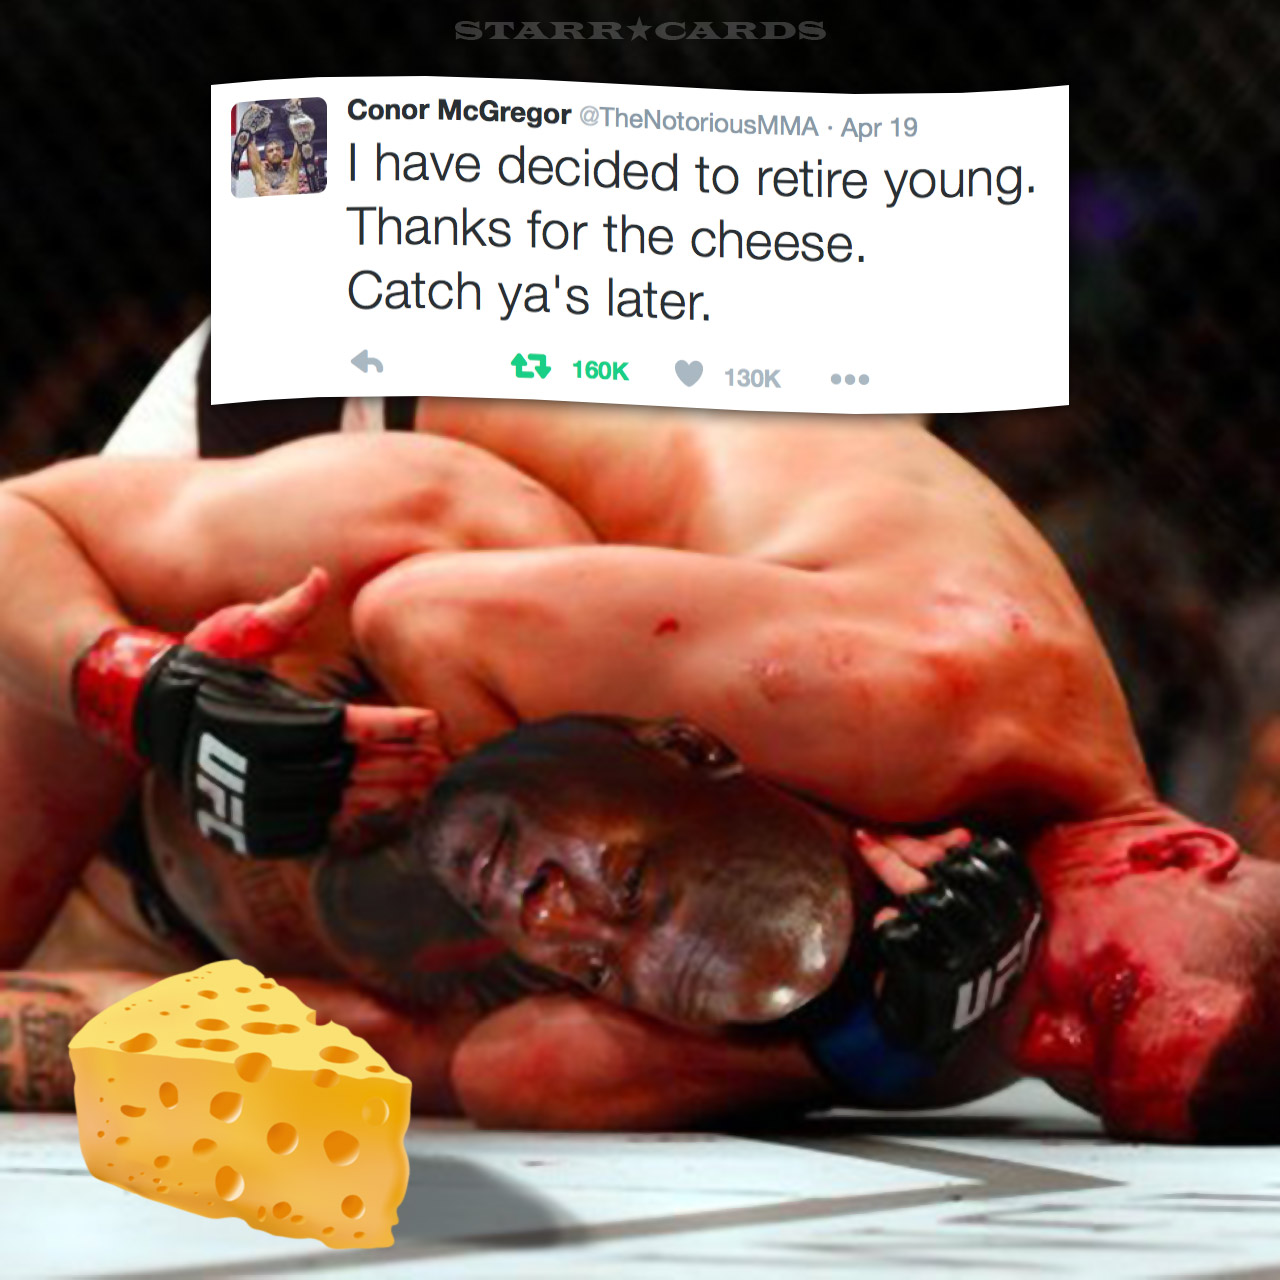 UFC fighter Conor McGregor retires with his cheese